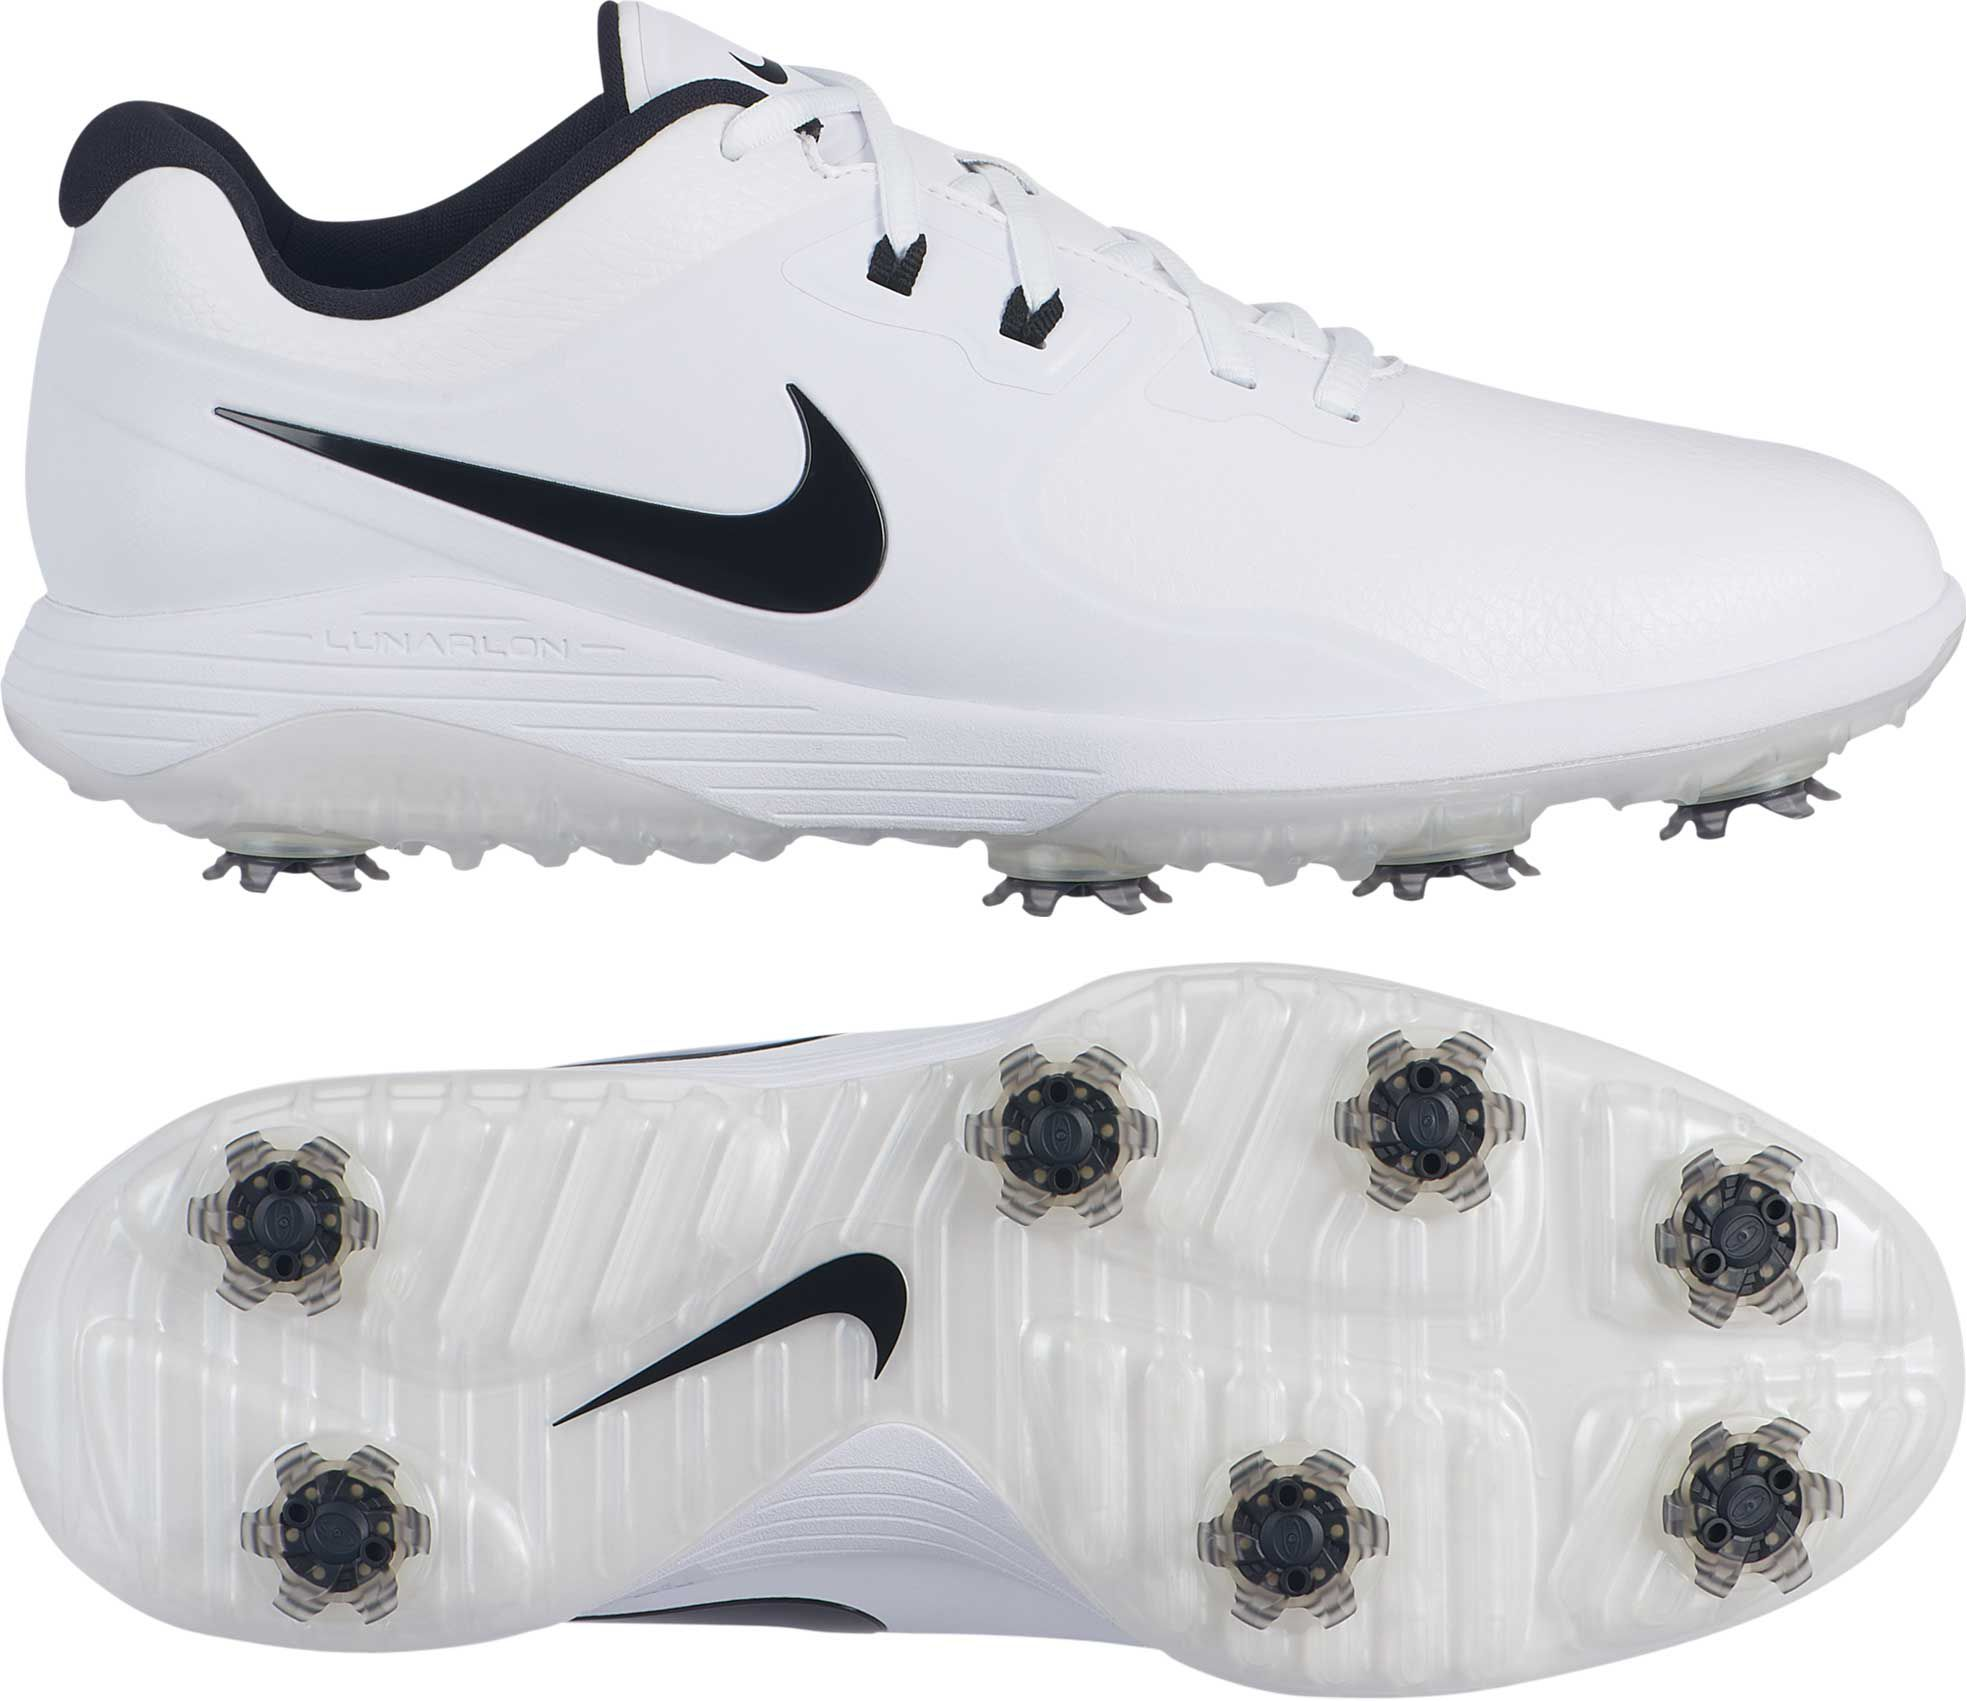 Nike Nike Men S Vapor Pro Golf Shoes Walmart Com Walmart Com